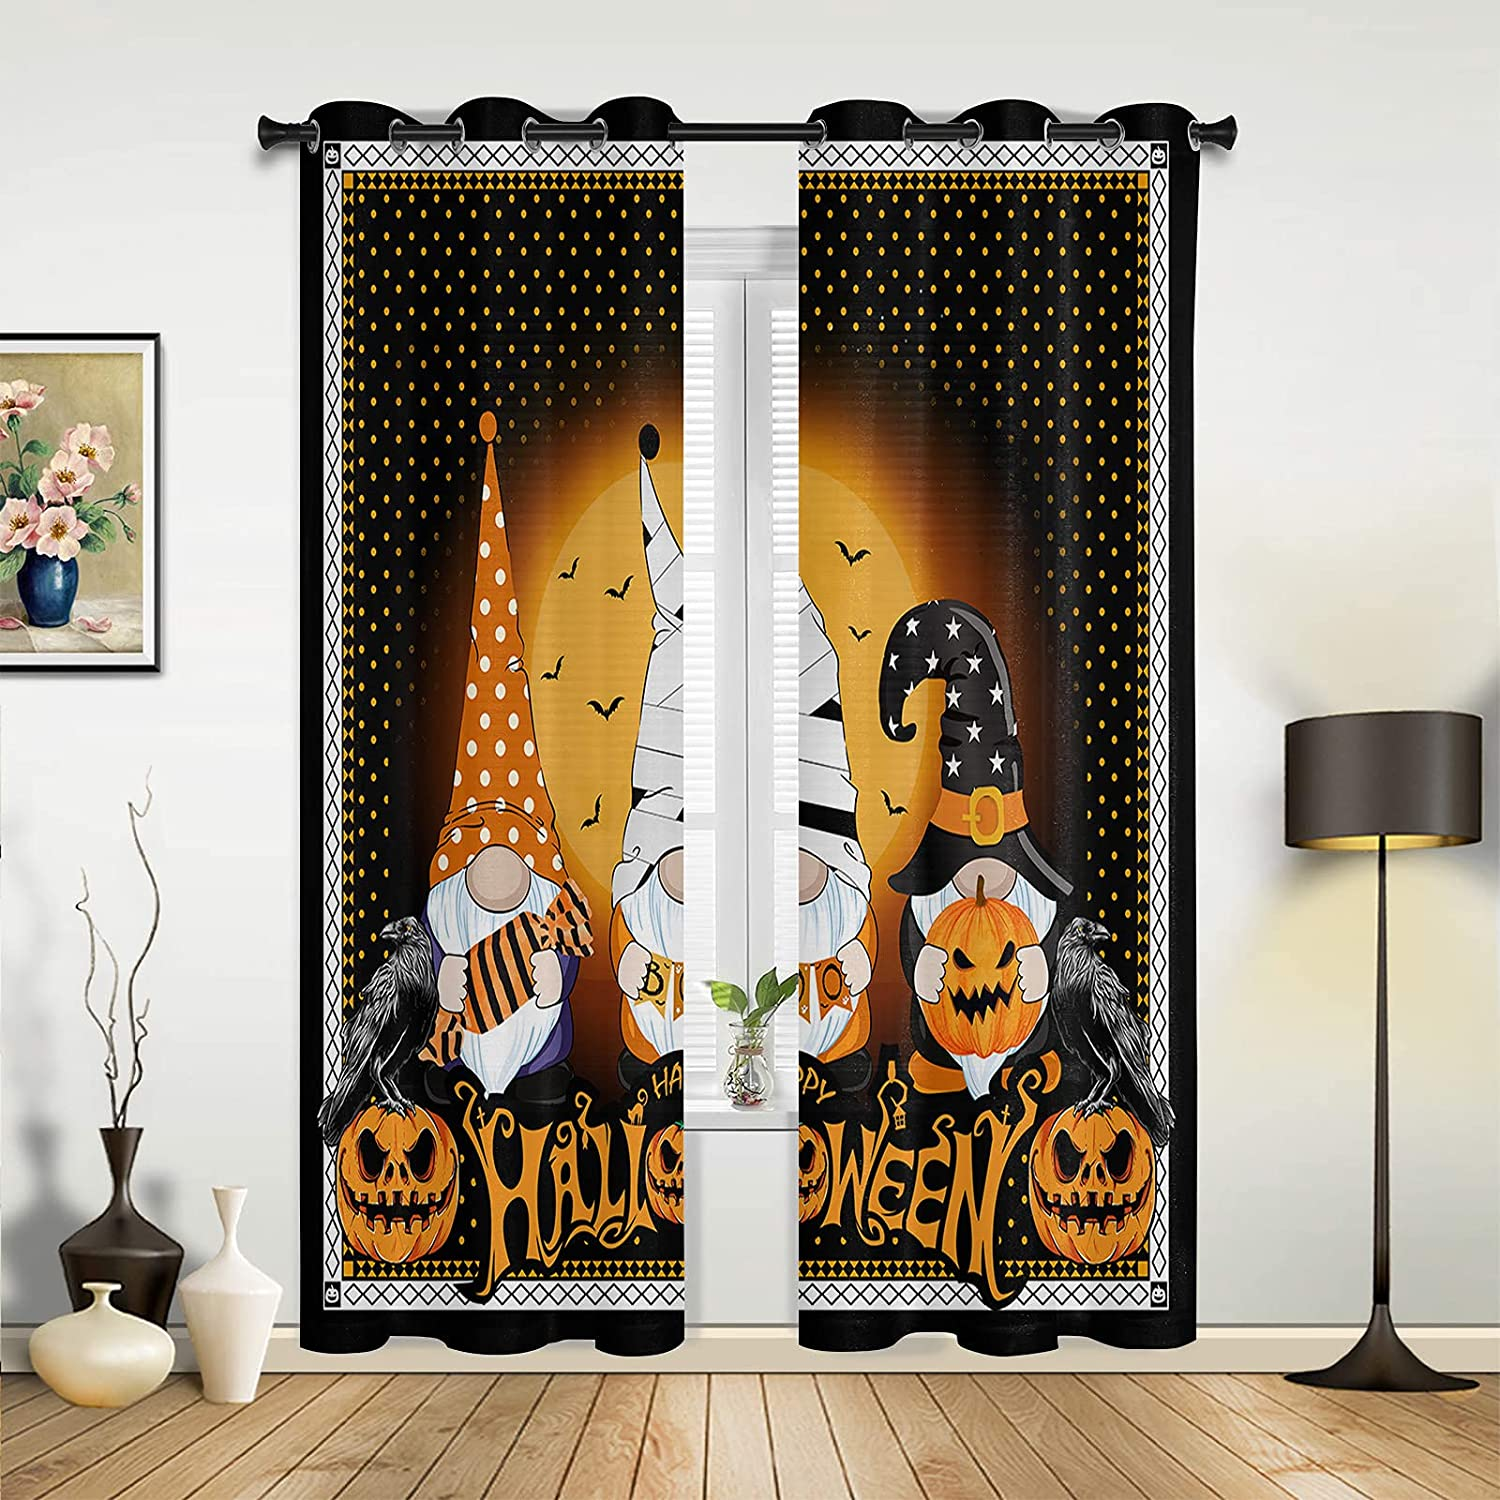 Window Sheer Curtains Max 68% OFF 1 year warranty for Bedroom Happy Halloween Gn Living Room